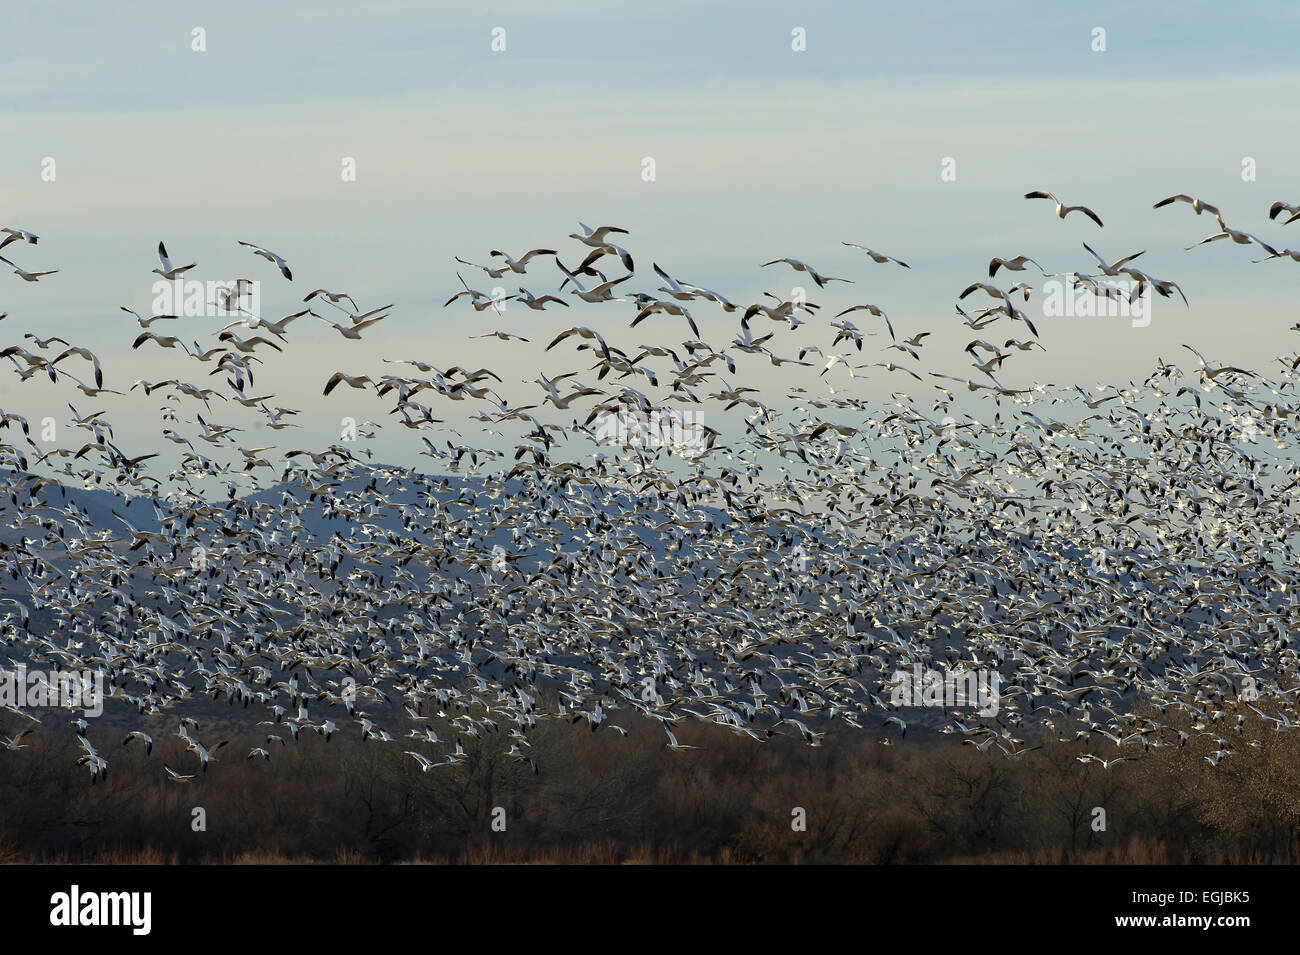 A flock of snow geese in the sky of Bosque Del Apache in New Mexico, USA Stock Photo